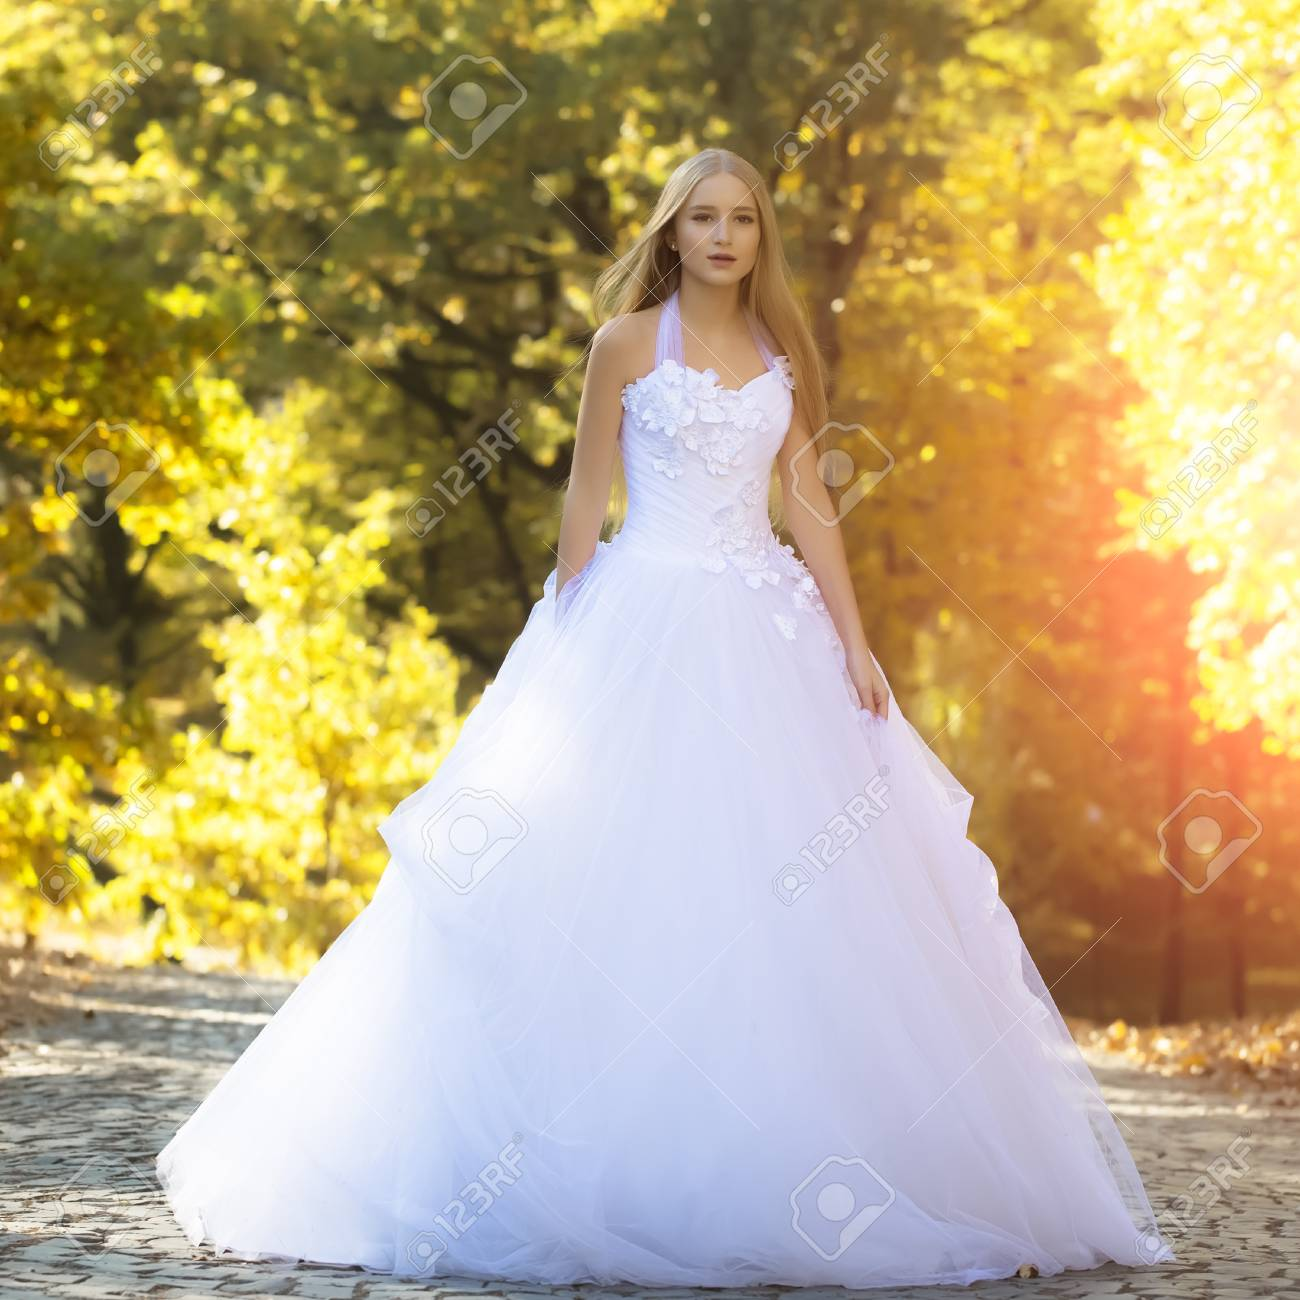 a9d6fad2 Pretty sensual thoughtful young bride girl with long blonde hair in beautiful  white wedding dress standing